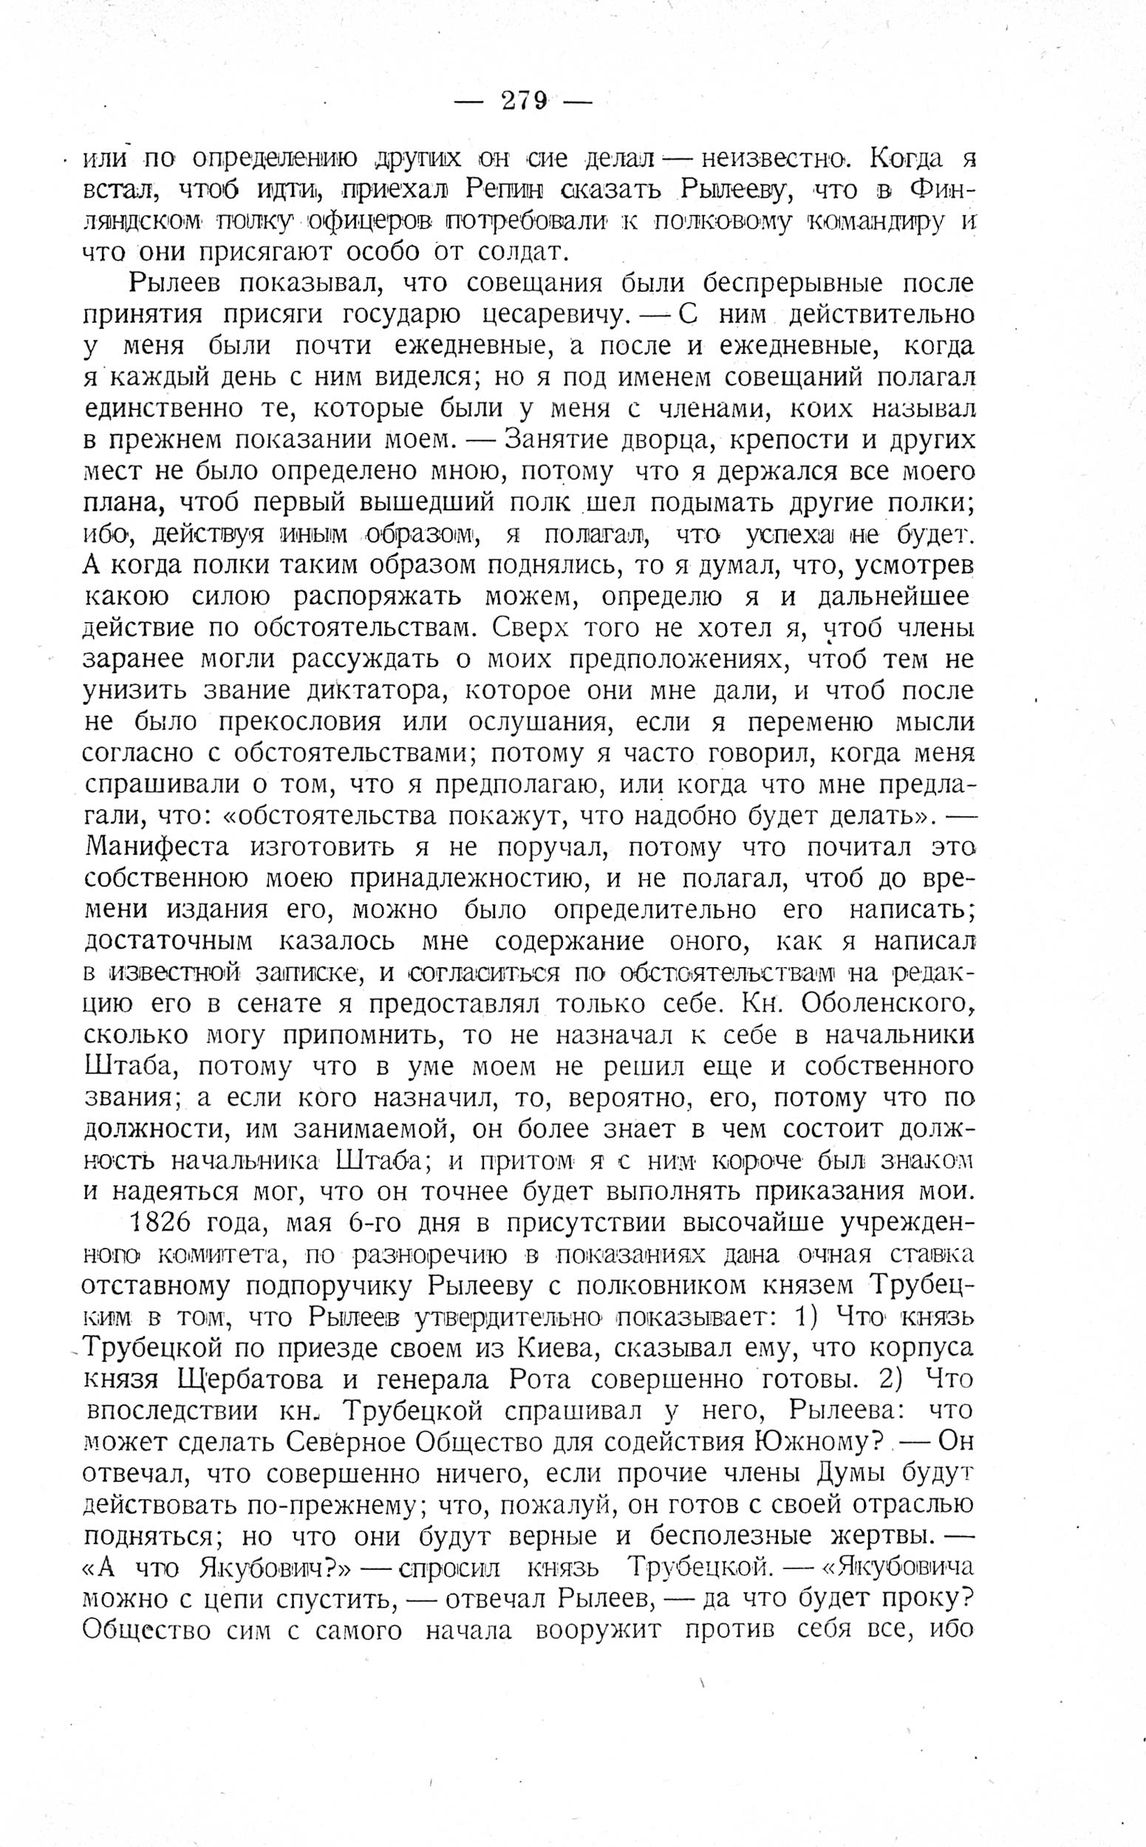 http://elib.shpl.ru/pages/625862/zooms/7